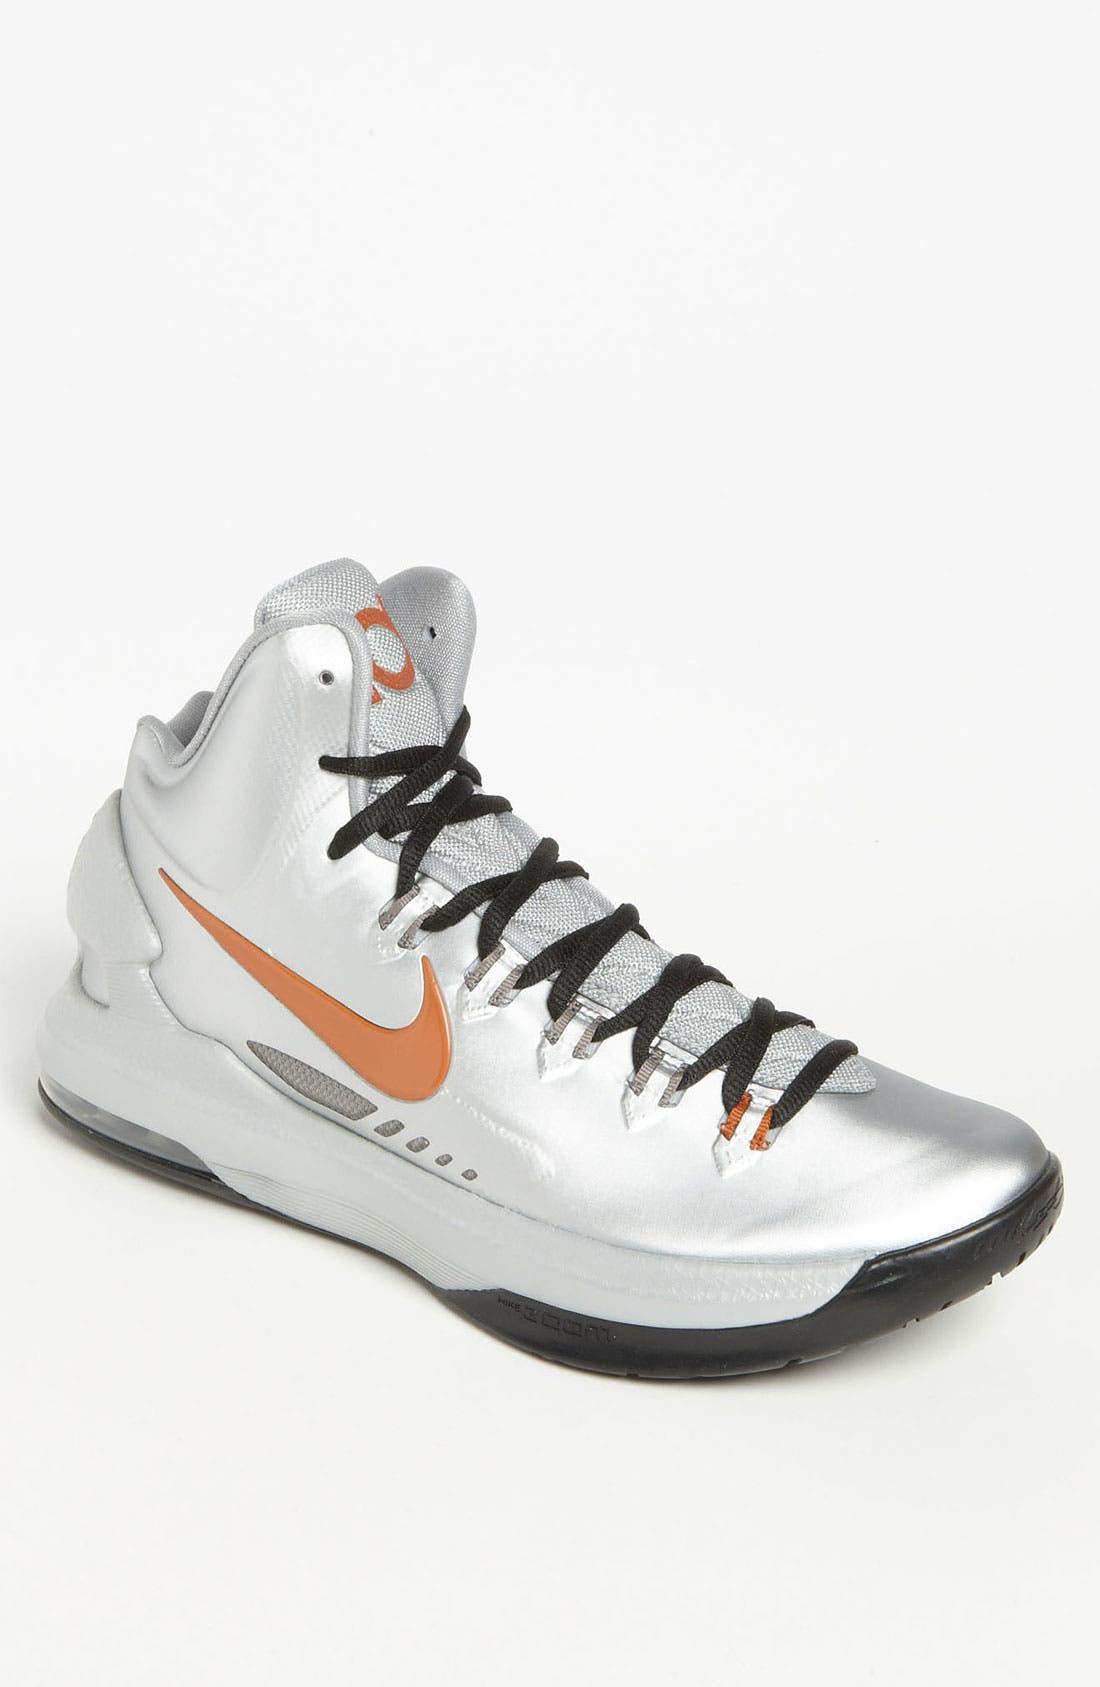 Alternate Image 1 Selected - Nike 'KD V' Basketball Shoe (Men)